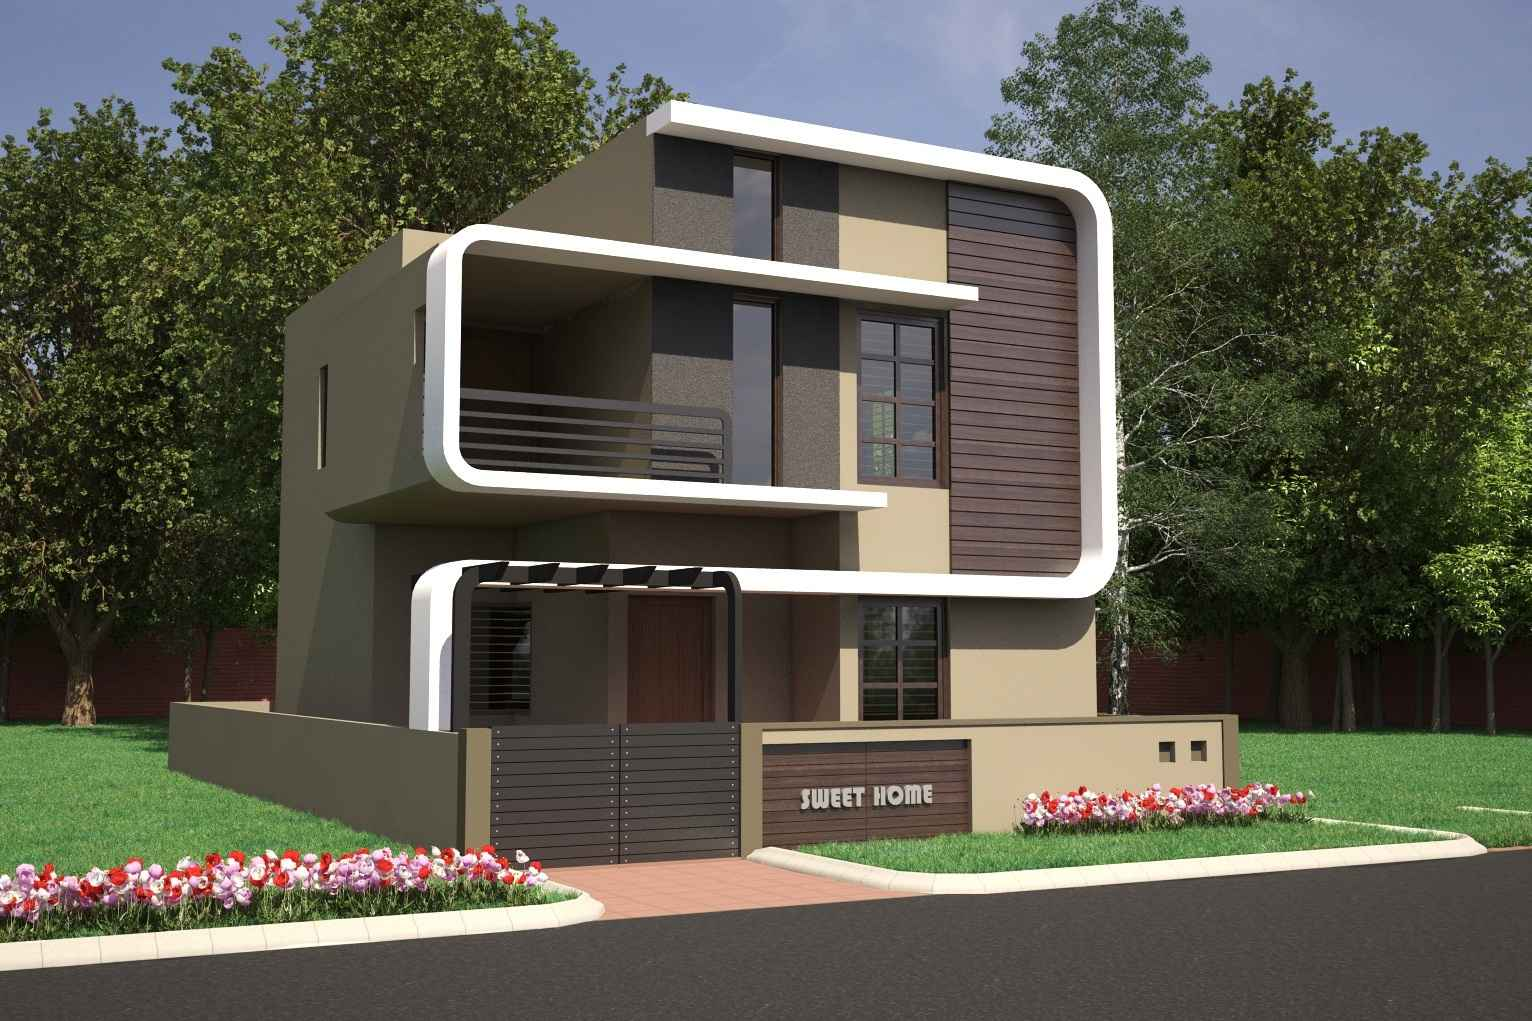 G9s g9 spacious dattagalli by g9 projects in mysore for Architecture design for 30x50 house